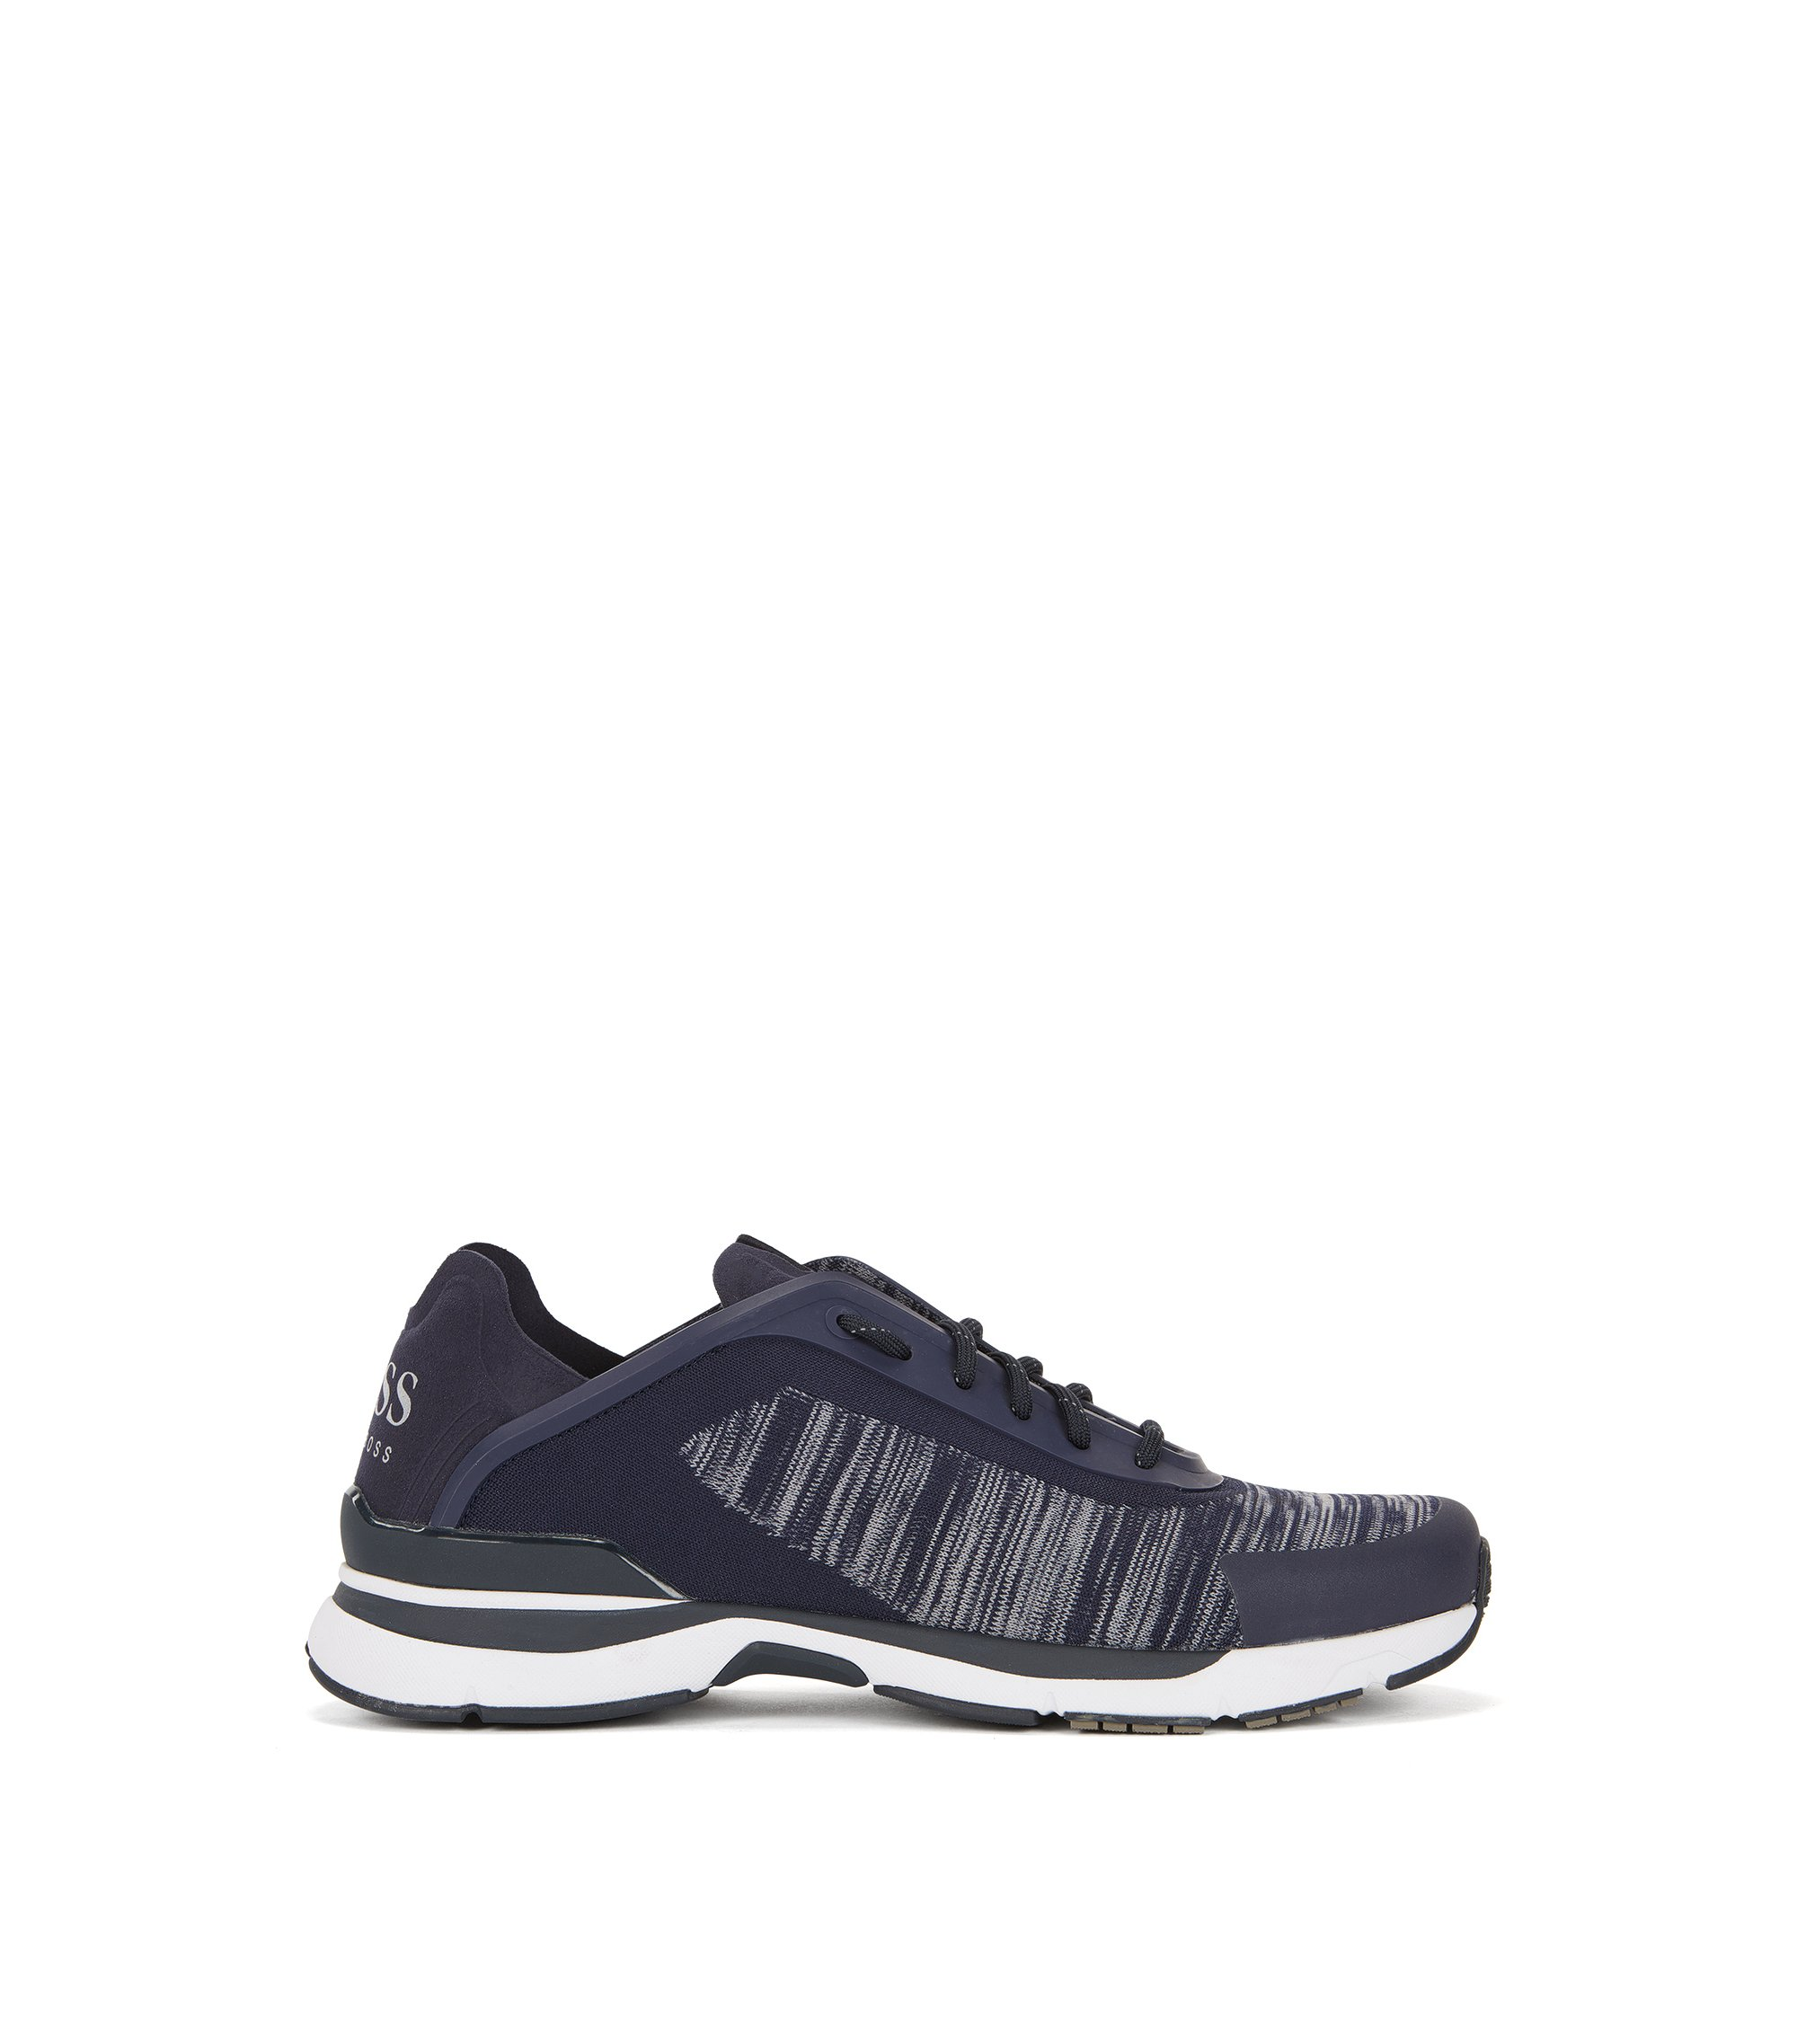 Running-inspired trainers with jacquard-knit uppers, Dark Blue